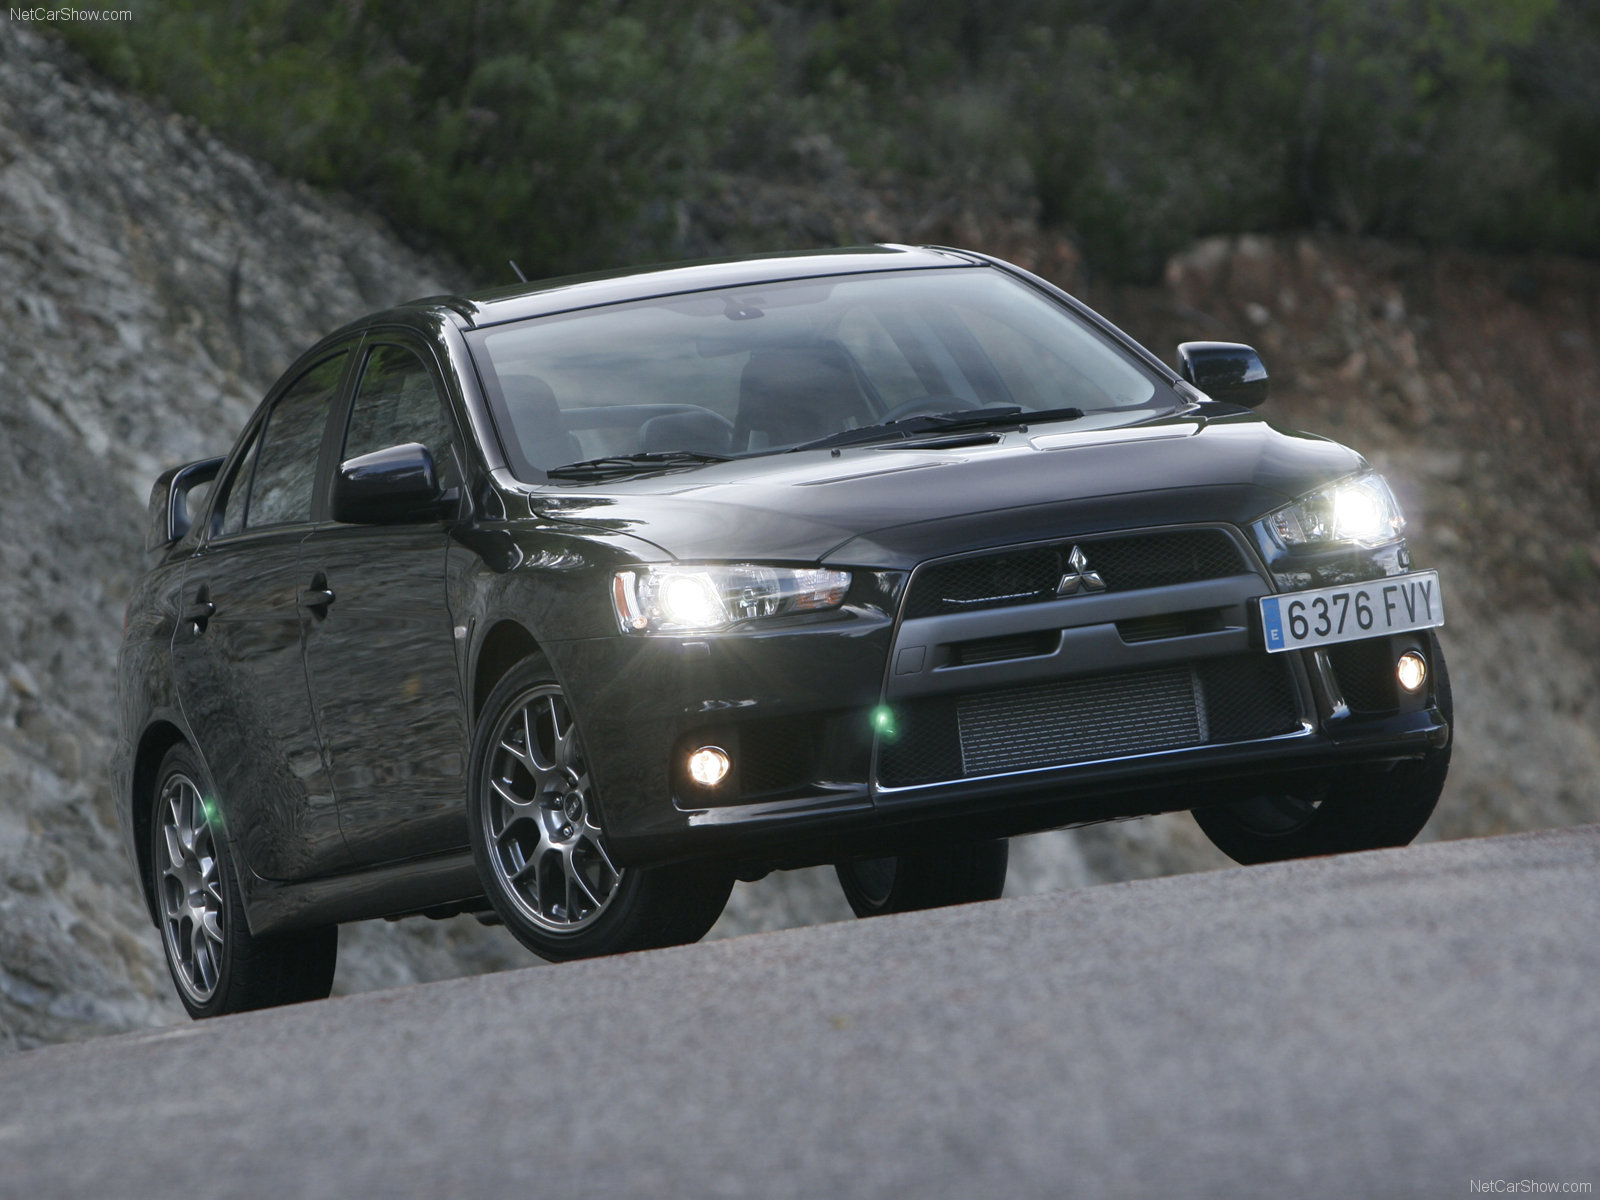 Mitsubishi Lancer Evolution X photo 56173